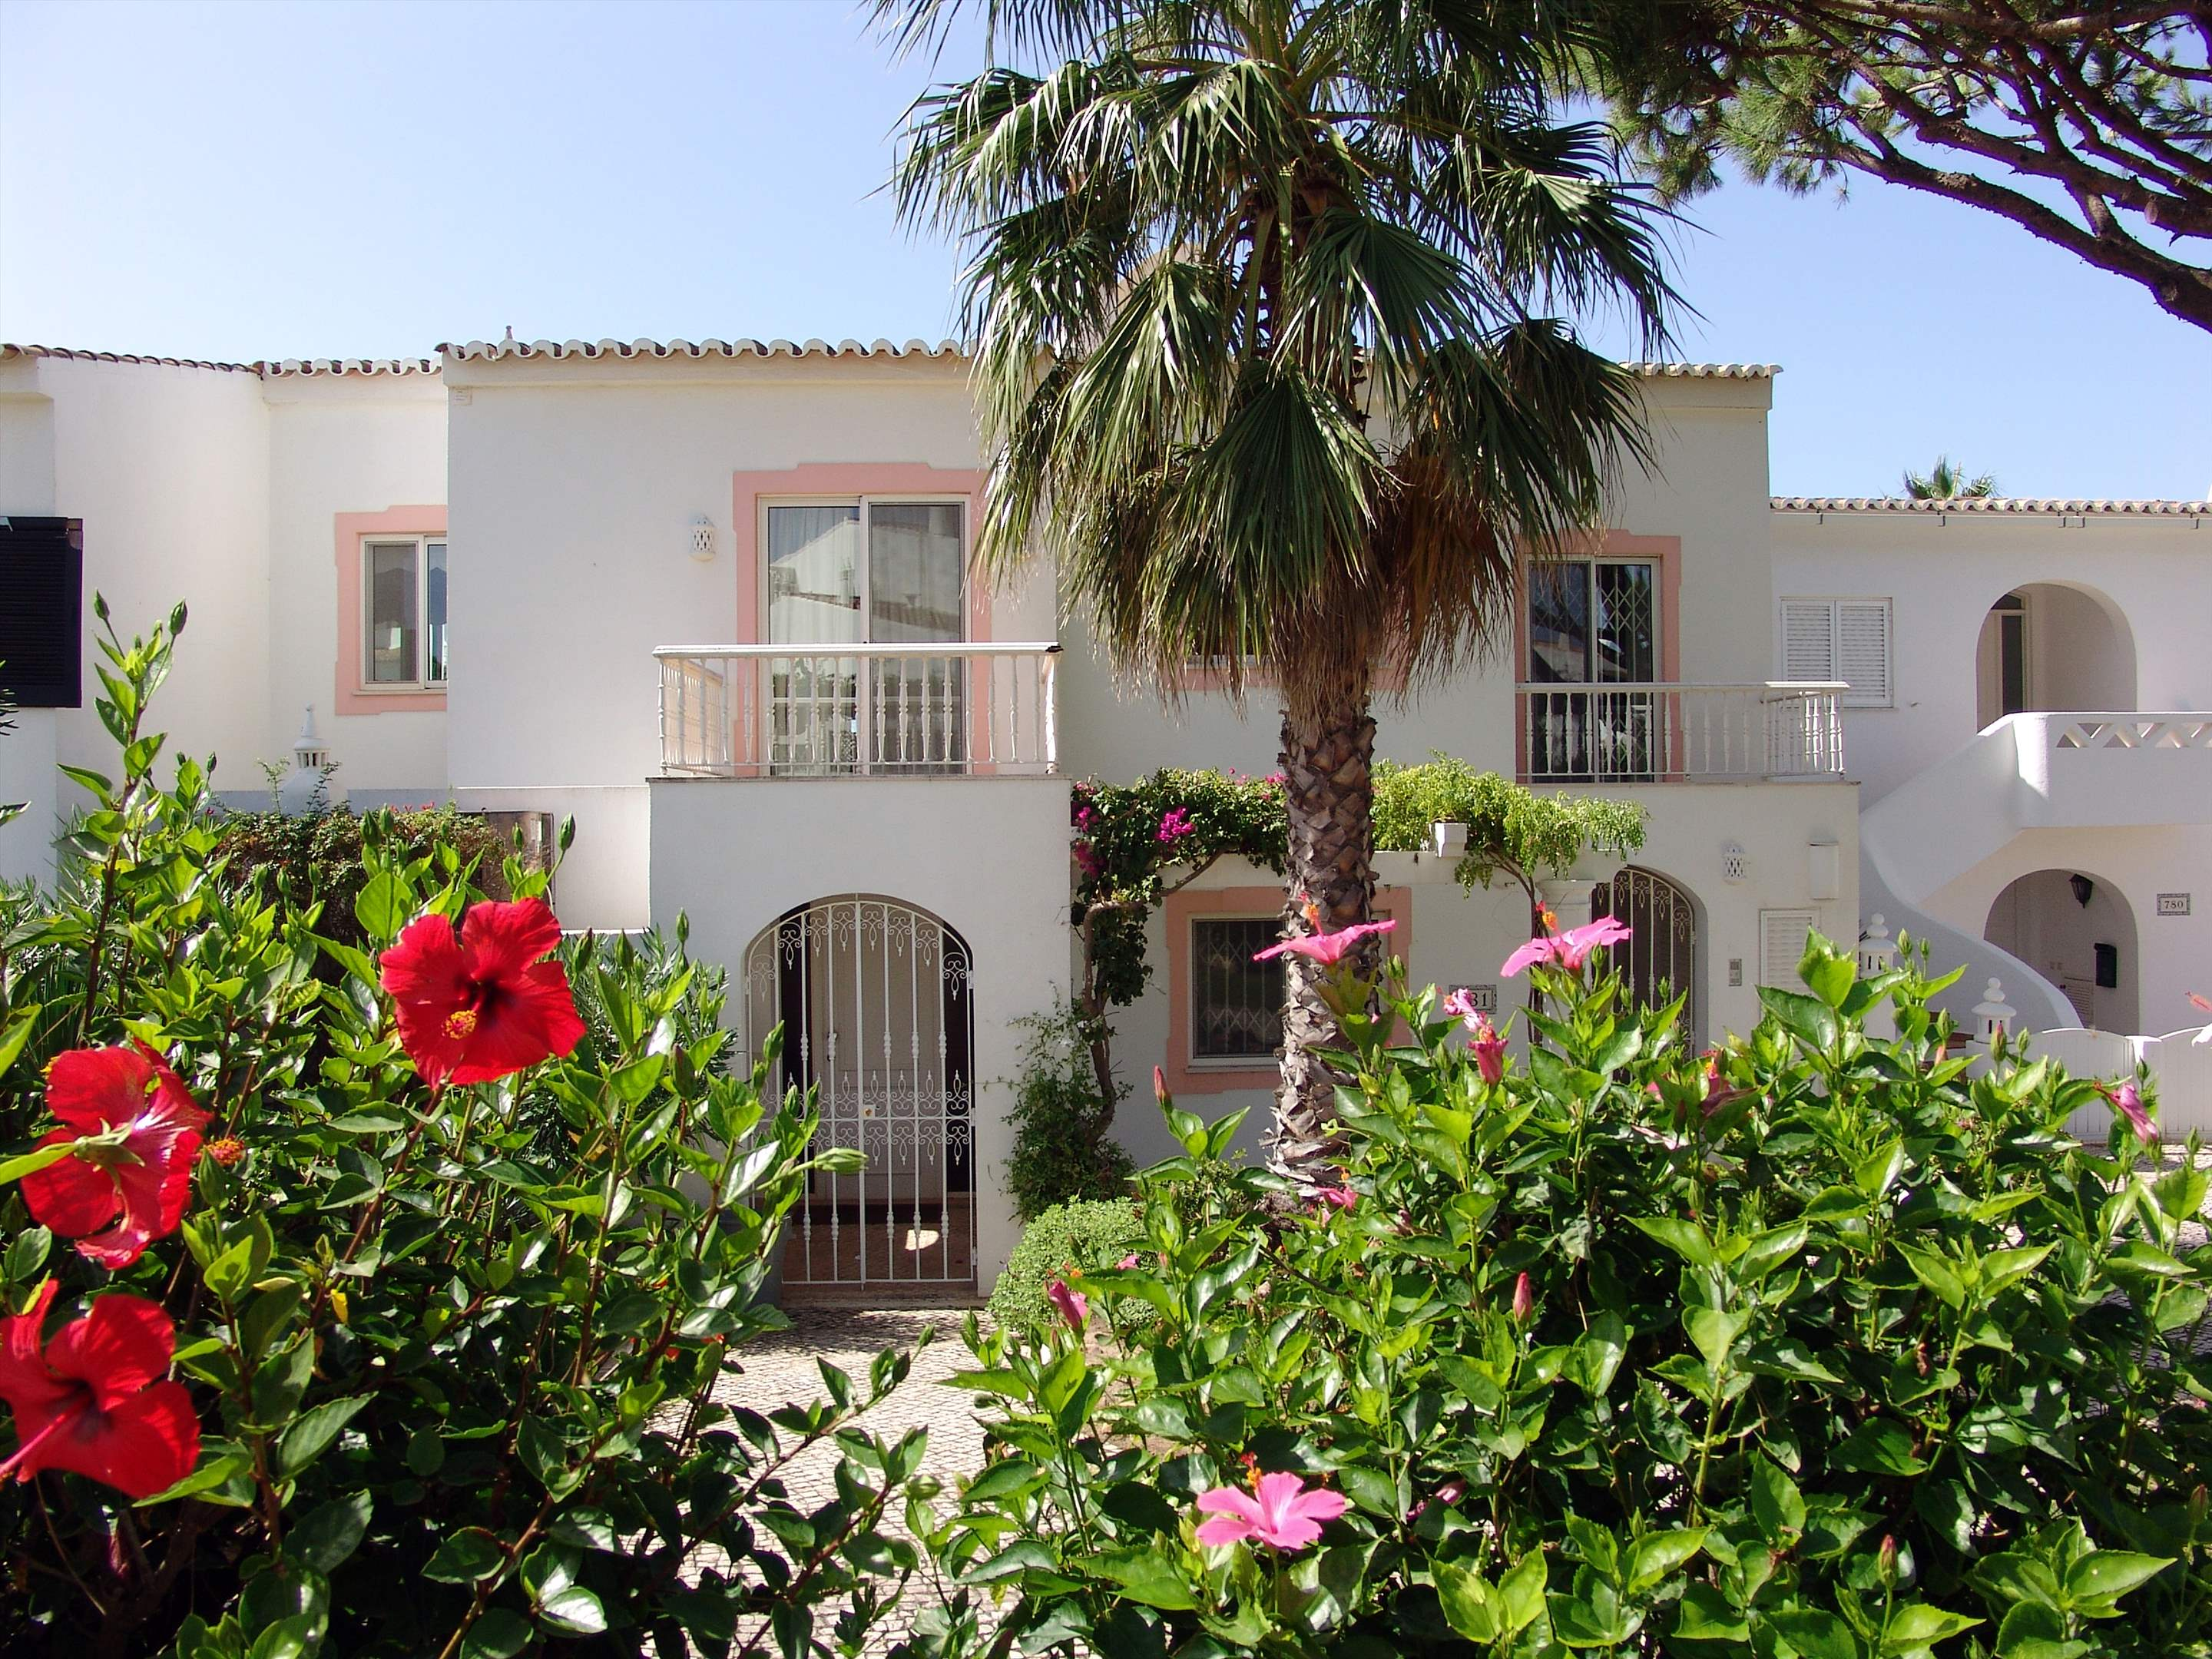 Villas Louisa, 3 bedroom, 3 bedroom villa in Vale do Lobo, Algarve Photo #13